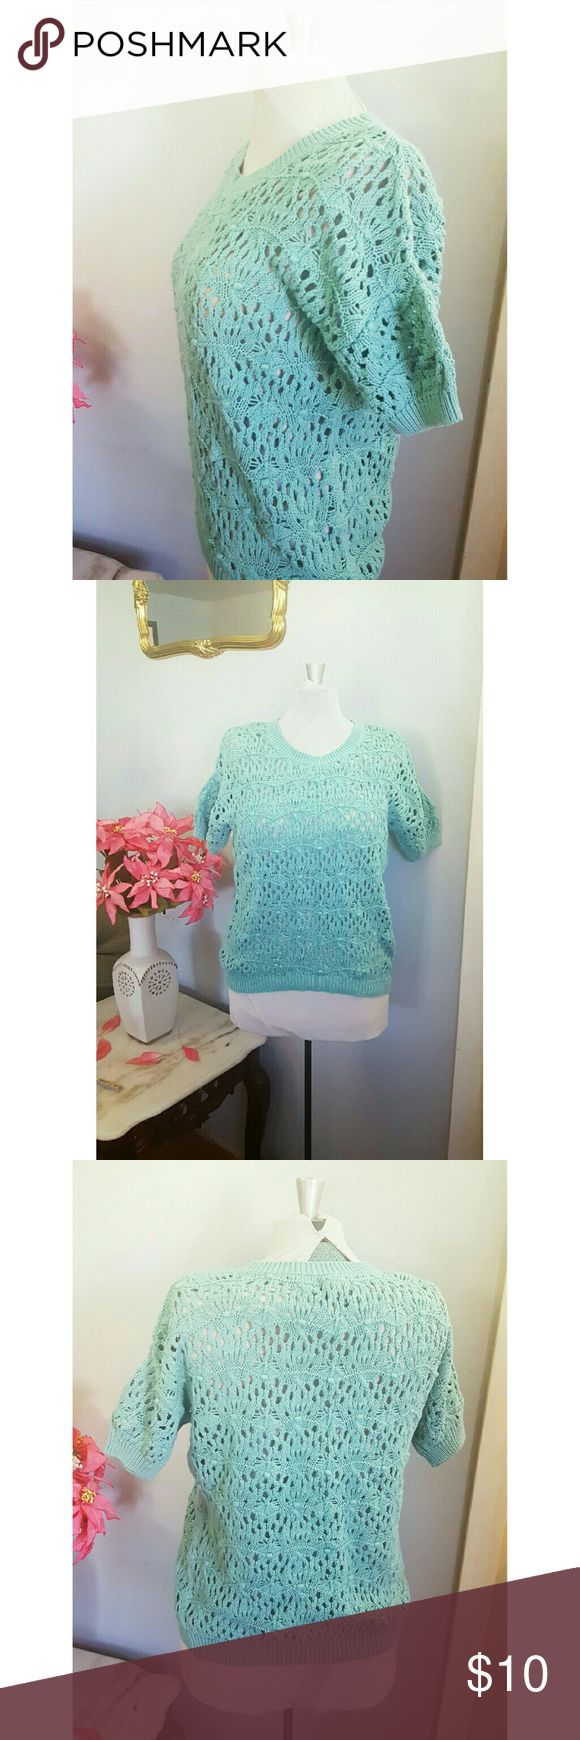 💥Oliva Sky Crochet Short Sleeve Top Brand: Olivia Sky | size small | $10 In very good condition.  Wear it above a bikini or over a tank !  HI my name is Aleja and thank you for stopping by!  Ships same day or next day | smoke and pet free home |Sorry no tryons or trades |24hr holds |Happy to answer all questions:)   Let's be friends on IG: @bella_doncella1107 Olivia sky Tops